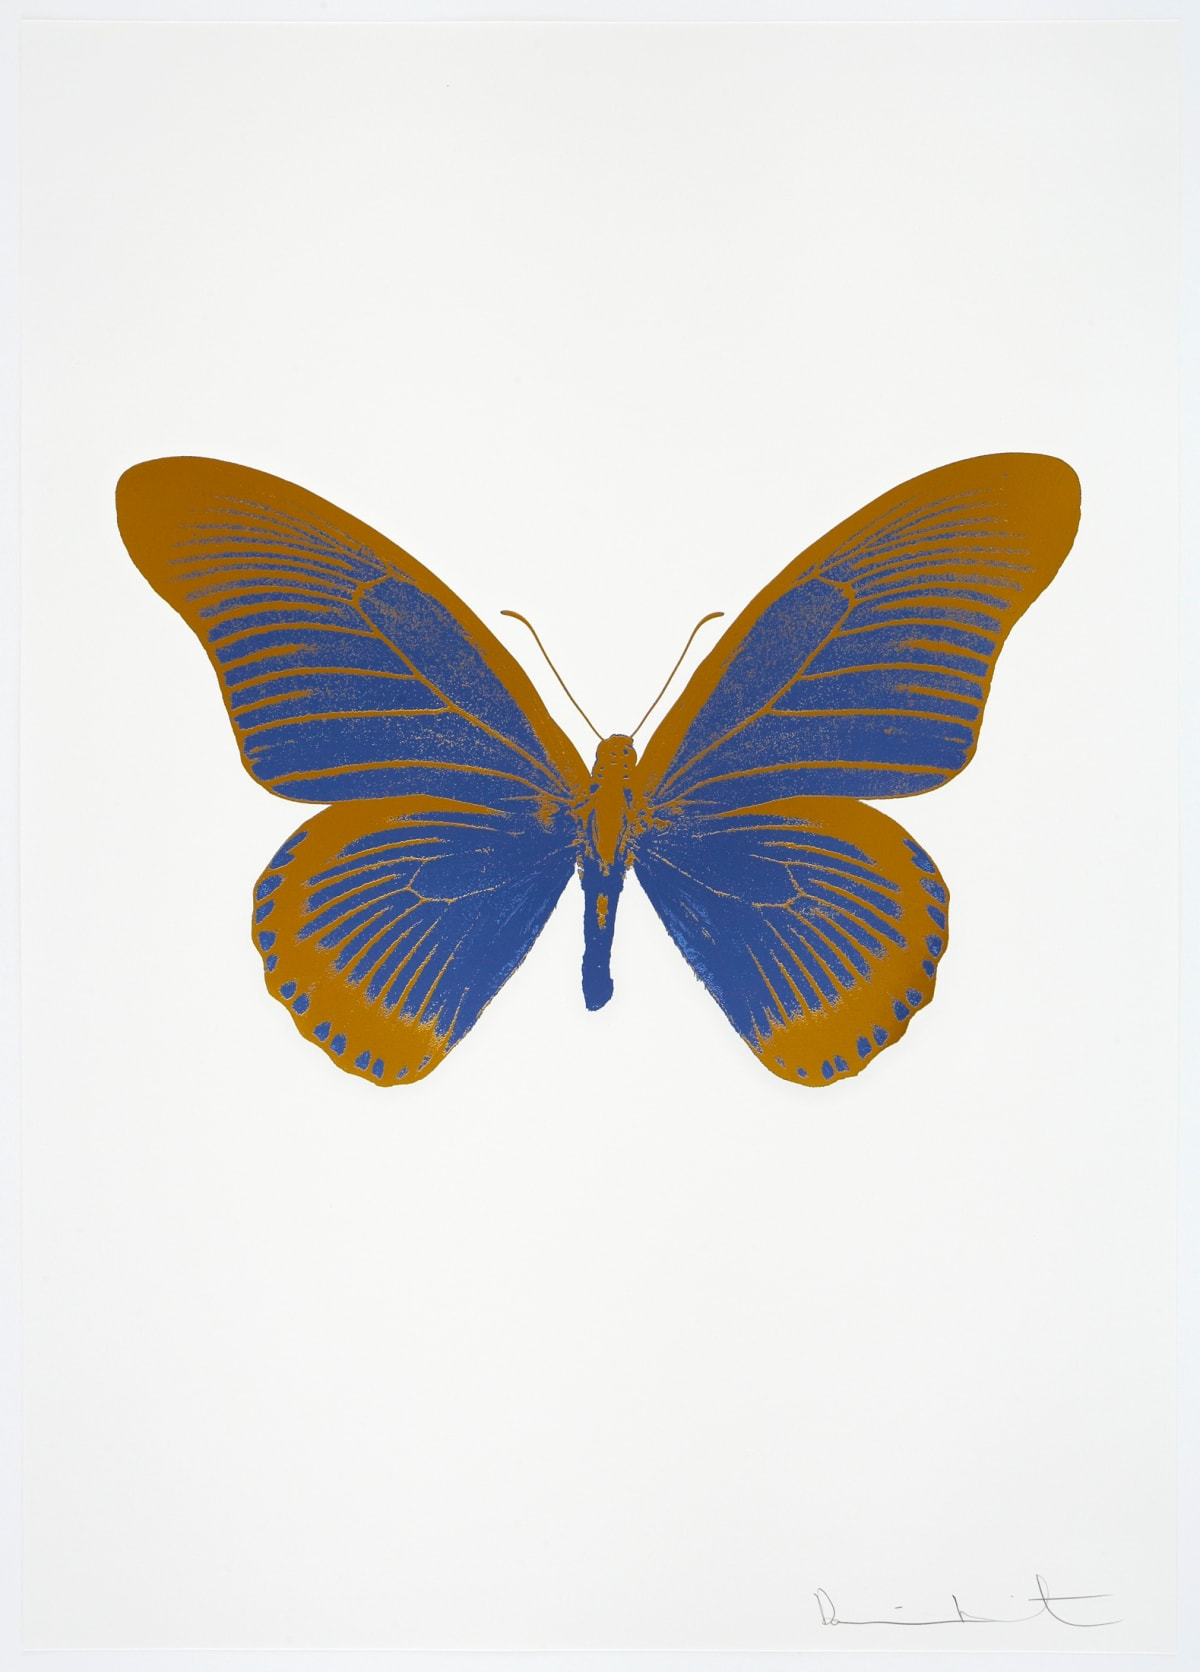 Damien Hirst The Souls IV - Frost Blue/Paradise Copper Damien Hirst butterfly foil print for sale Damien Hirst print for sale , 2010 2 colour foil block on 300gsm Arches 88 archival paper. Signed and numbered. Published by Paul Stolper and Other Criteria 72 x 51cm OC8022 / 1418-45 Edition of 15